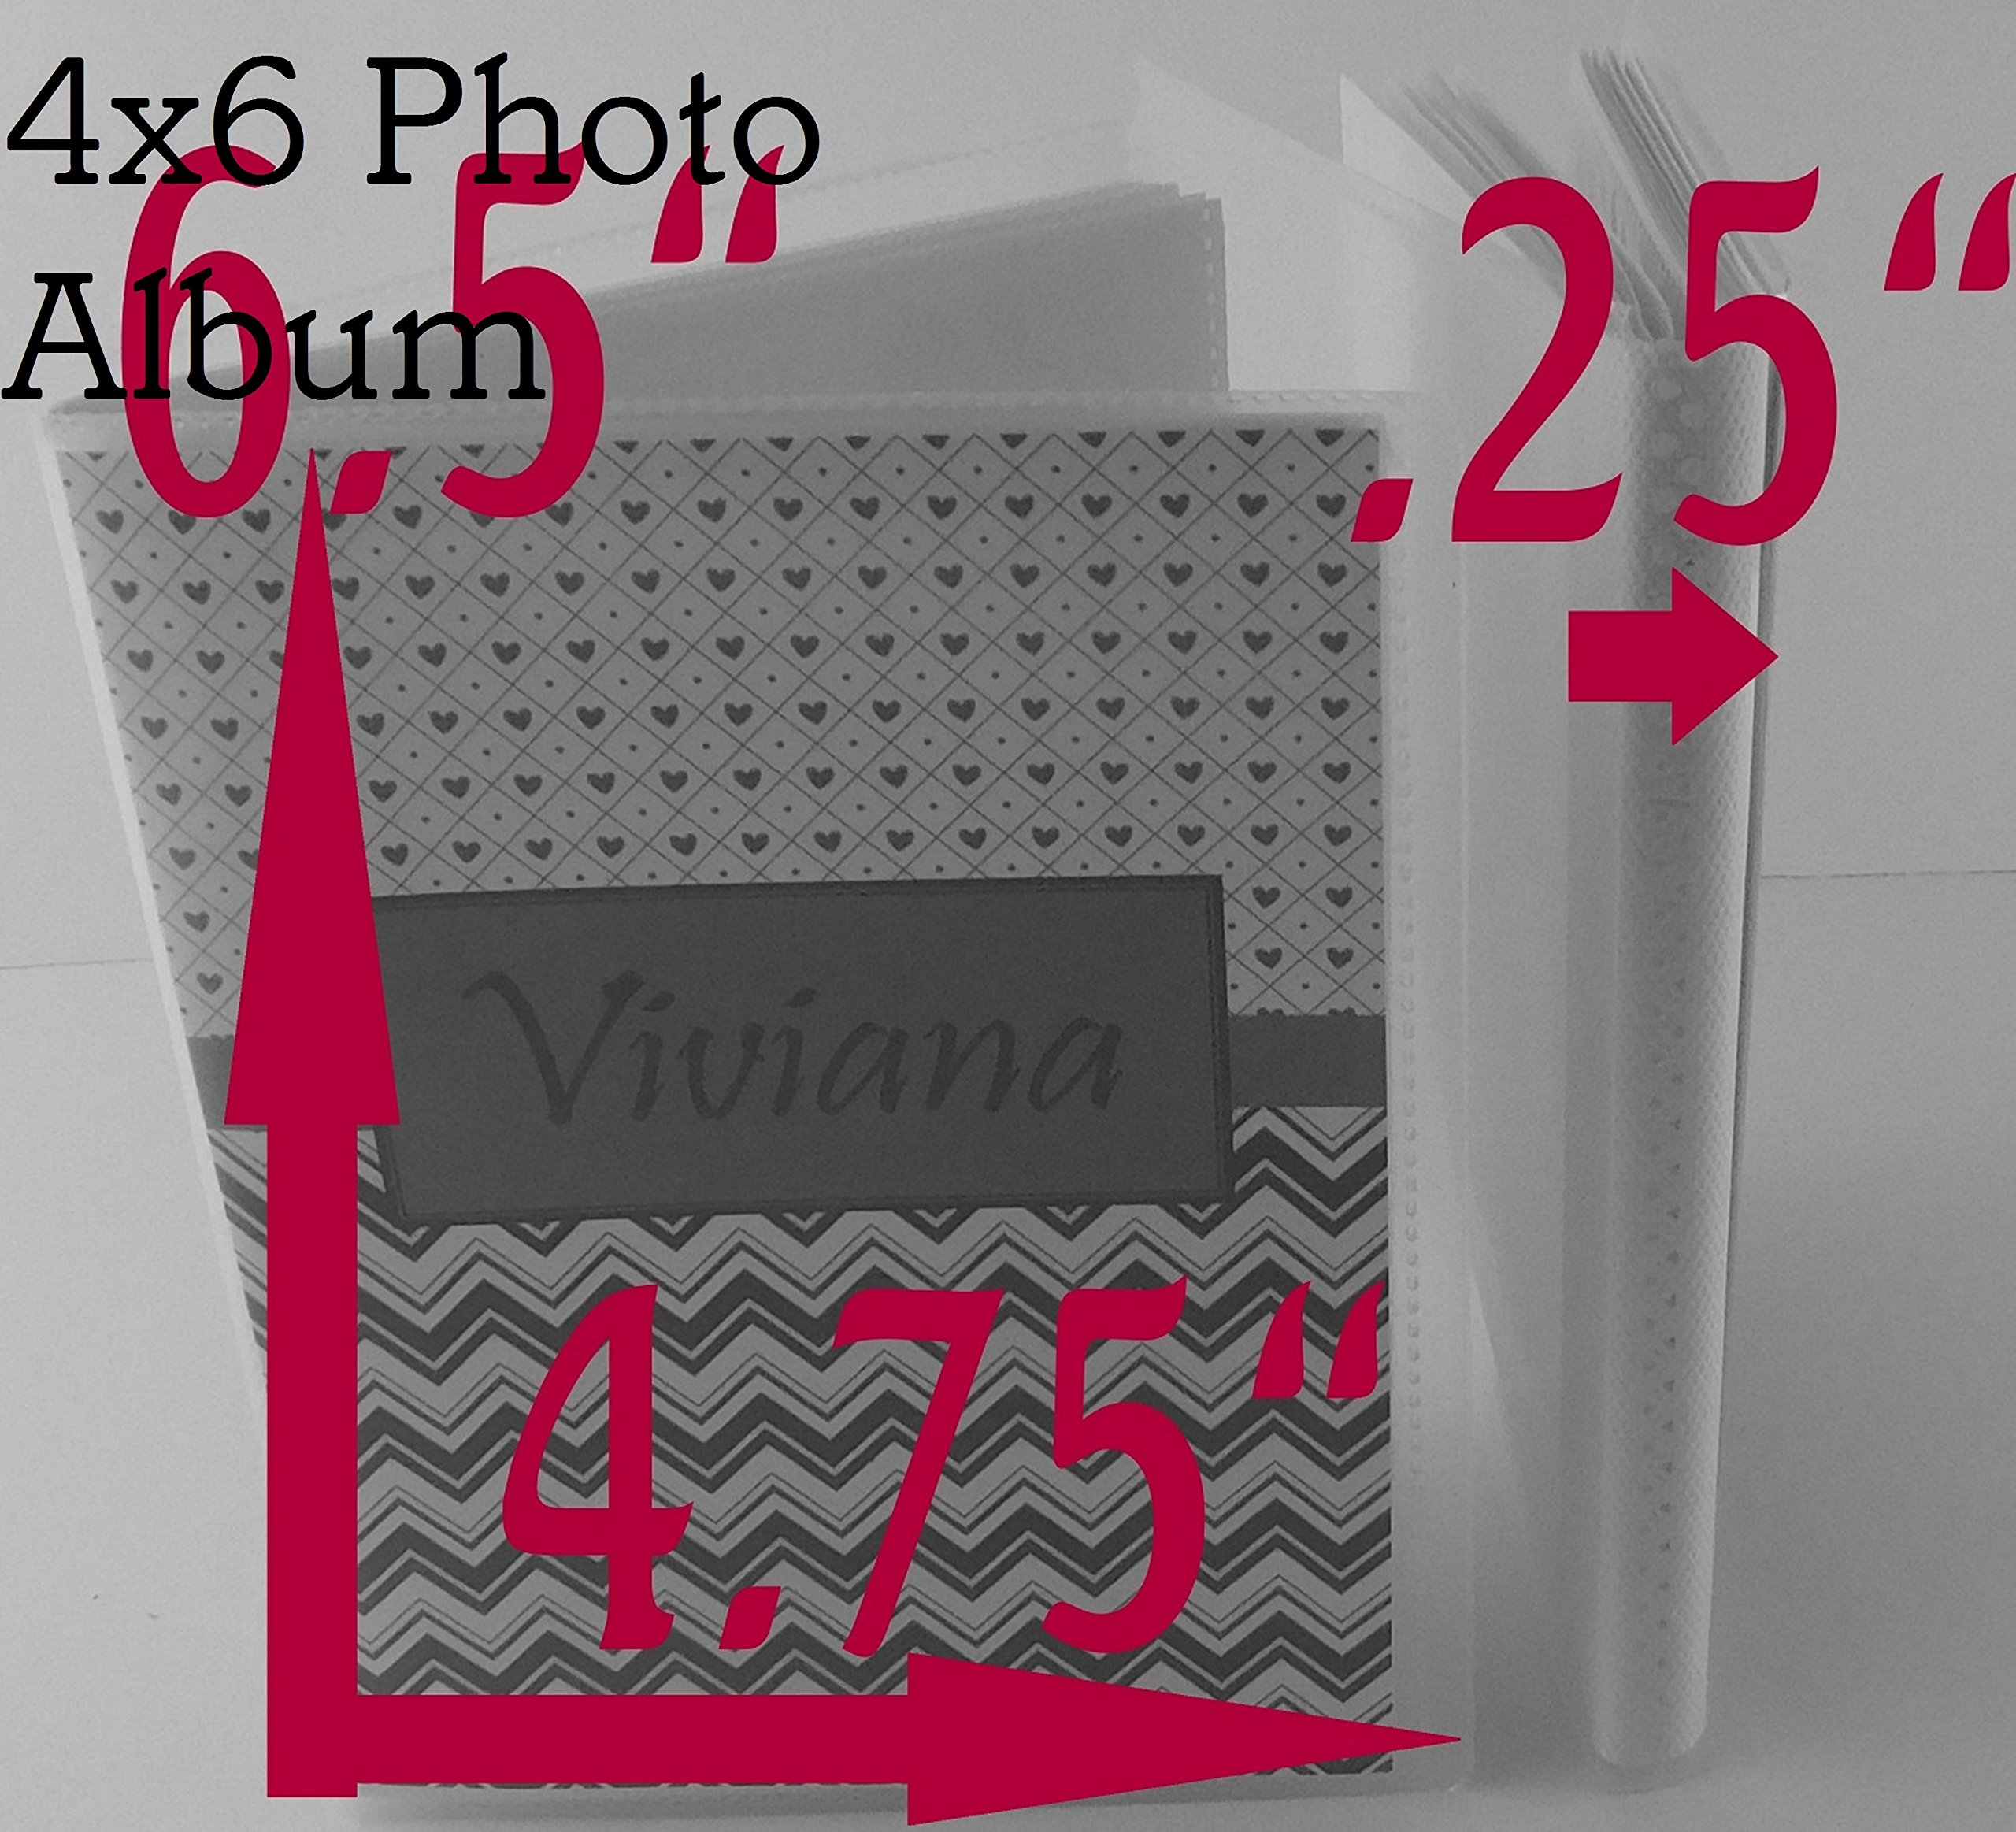 Our Wedding Photo Album IA#375 Personalized Rustic Bridal Shower Gift NOT REAL WOOD or LACE by JaDazzles (Image #5)